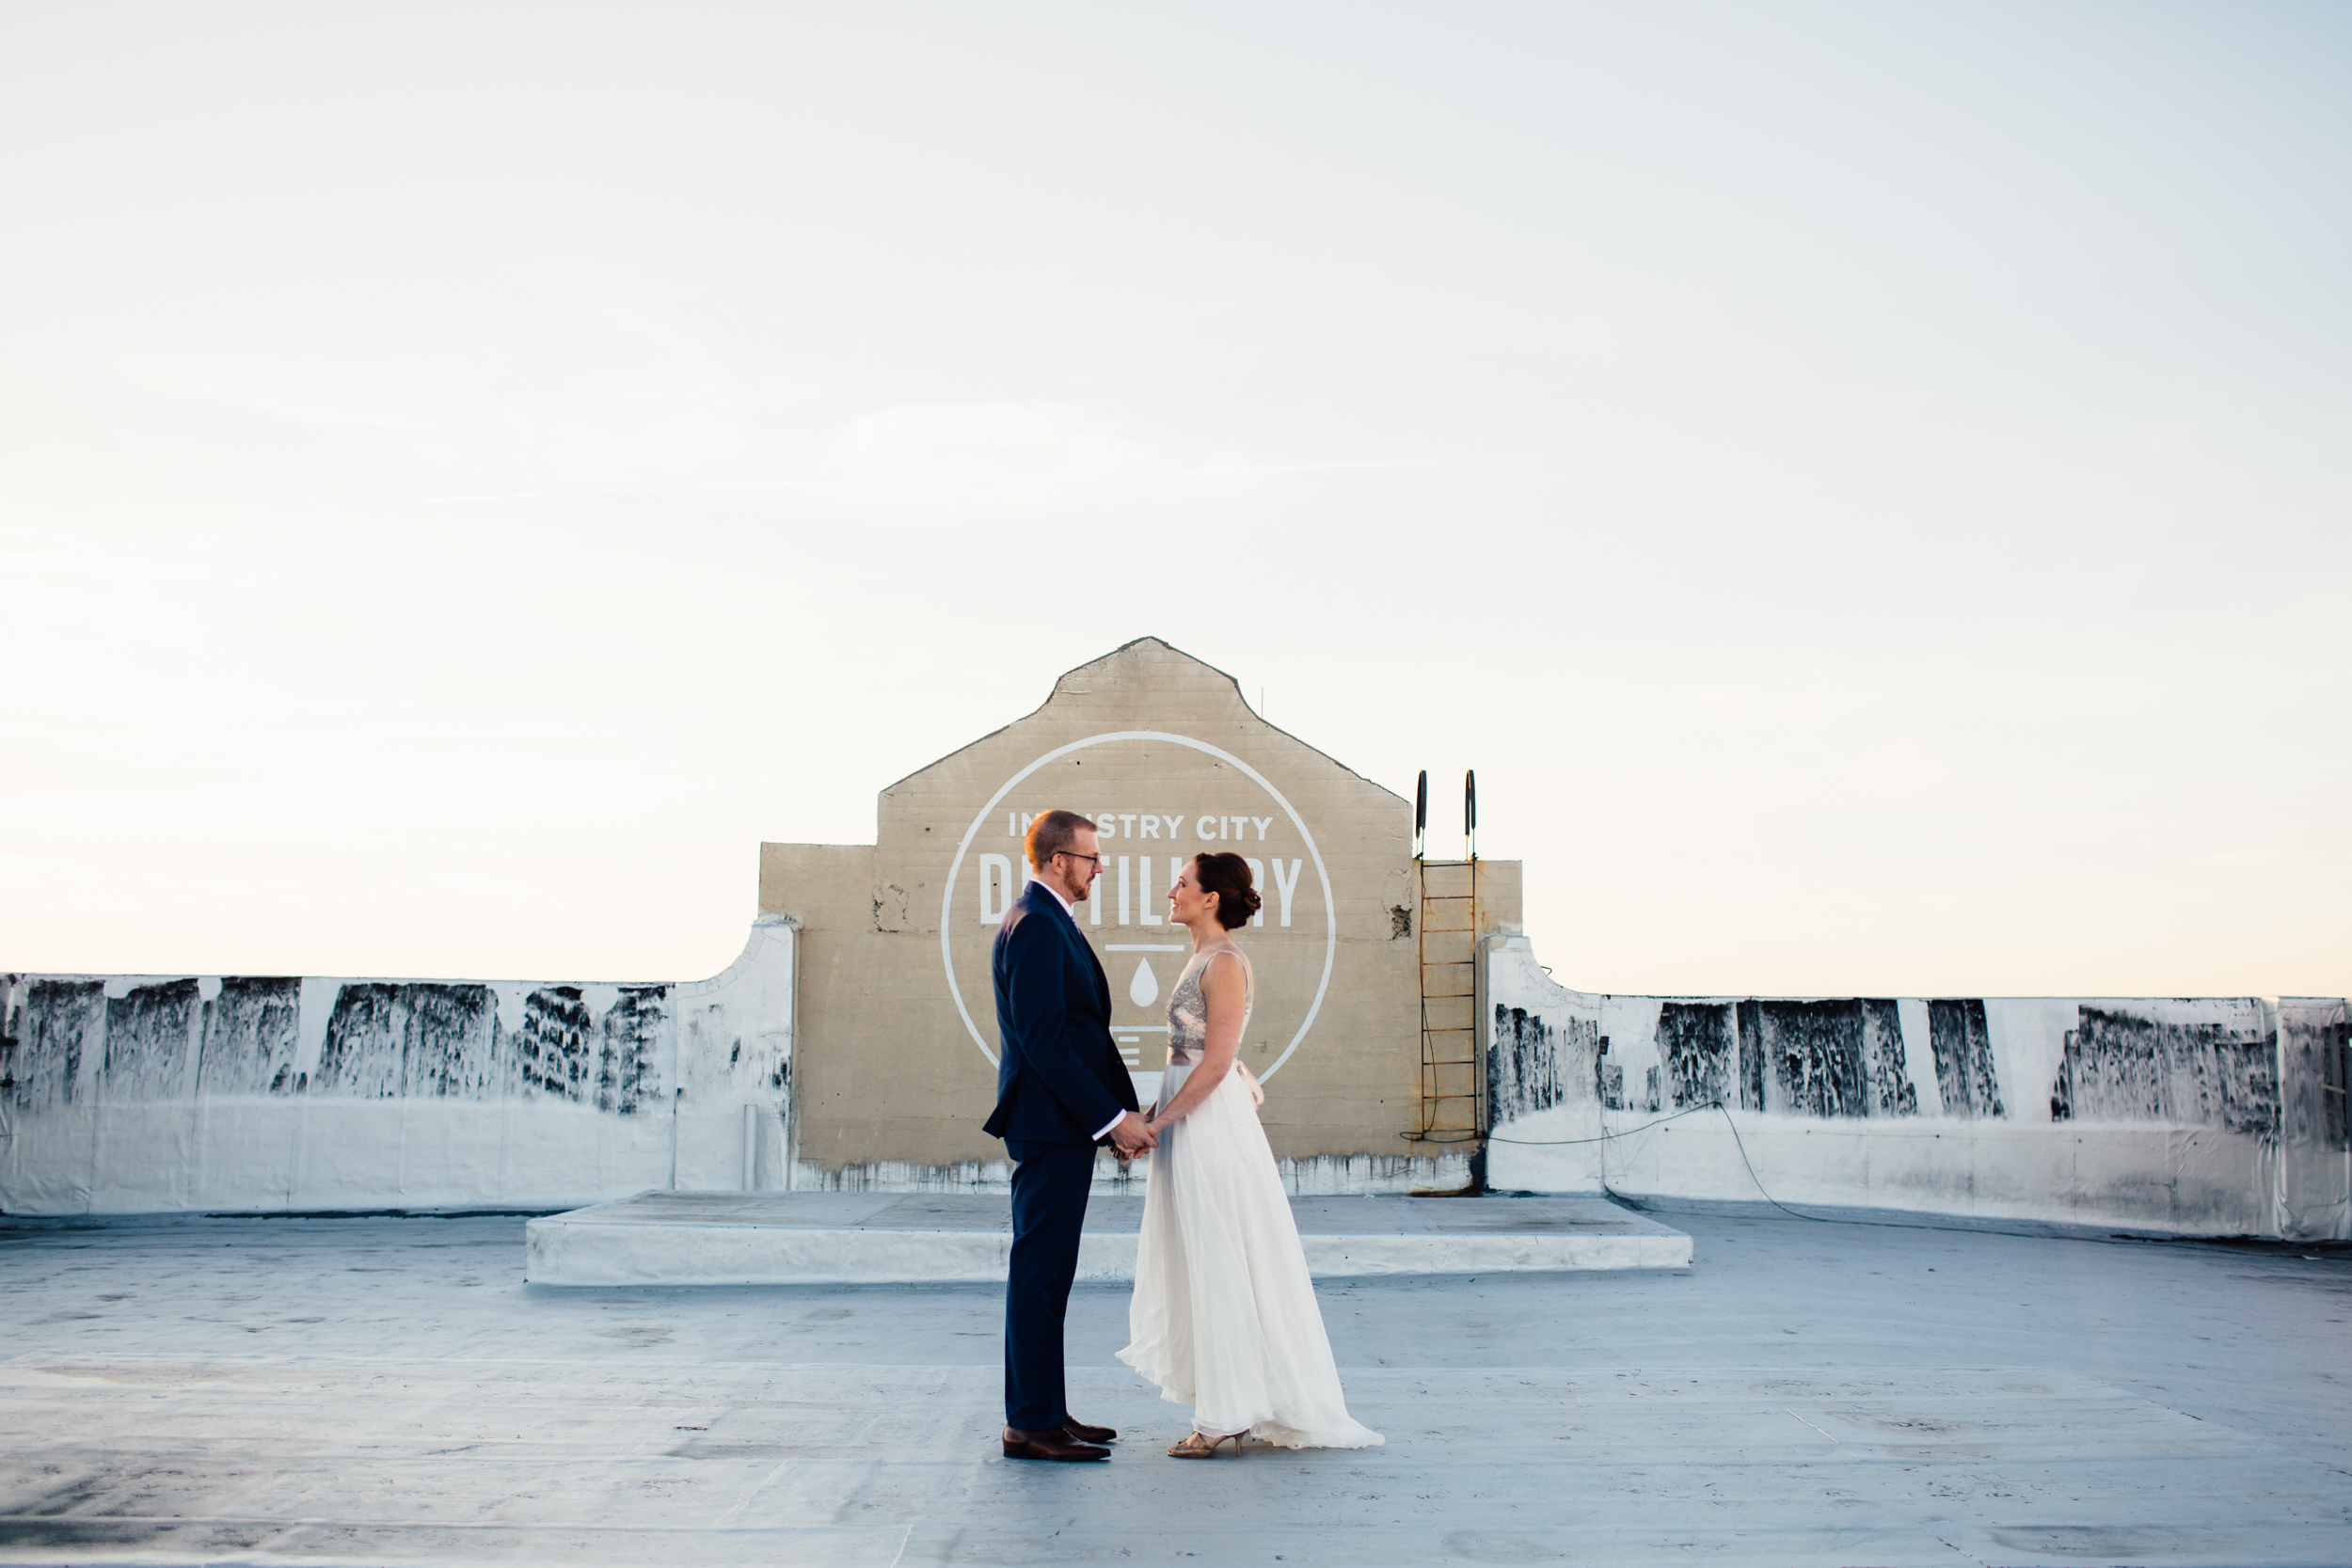 industry_city_distillery_brooklyn_wedding-0416